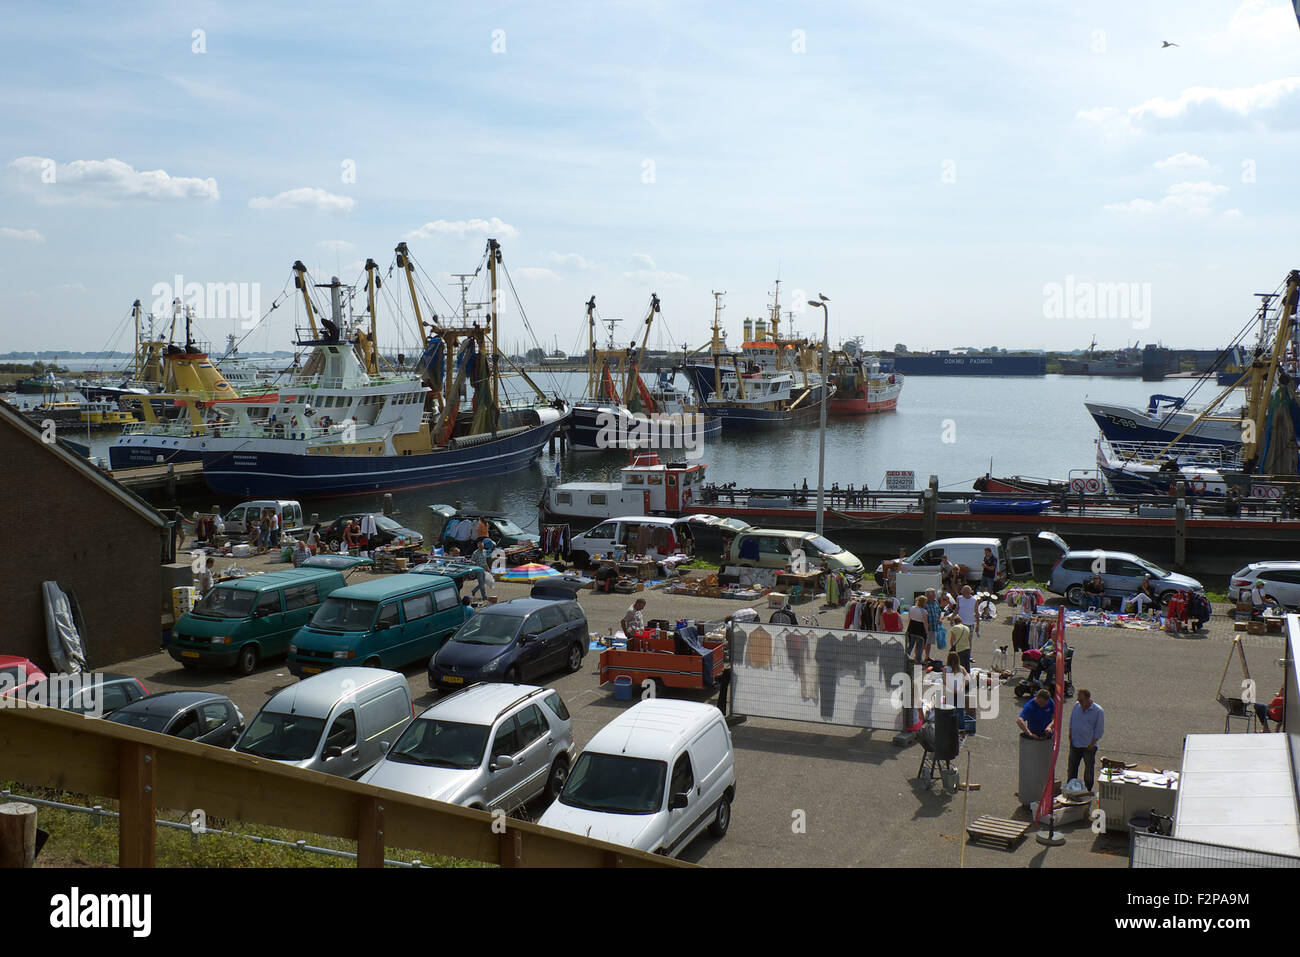 Market and car-boot sale, Deltahaven, nr Stellendam, Goeree-Overflakkee, Zuid-Holland, Netherlands - Stock Image